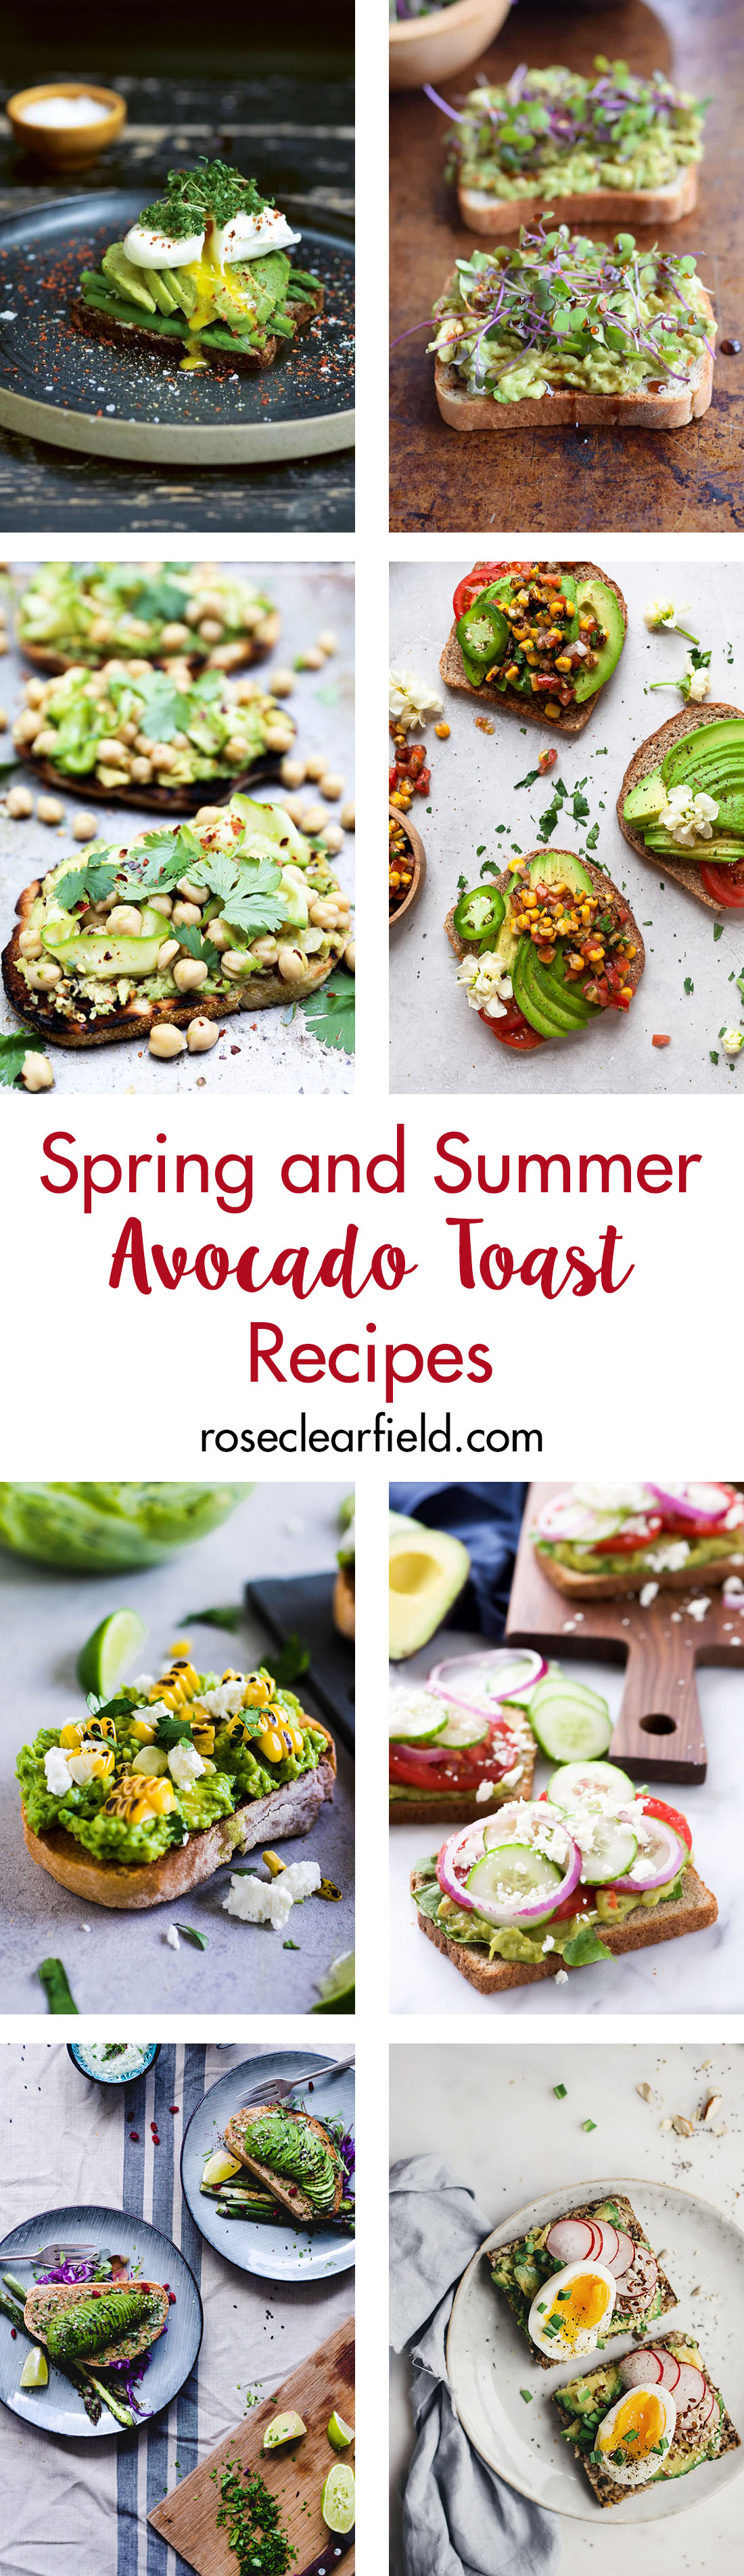 Spring and summer avocado toast recipes. Quick, healthy, and seasonal breakfast and lunch ideas for the warmer months of the year! #avocadotoast #healthyeating #breakfast ideas | https://www.roseclearfield.com